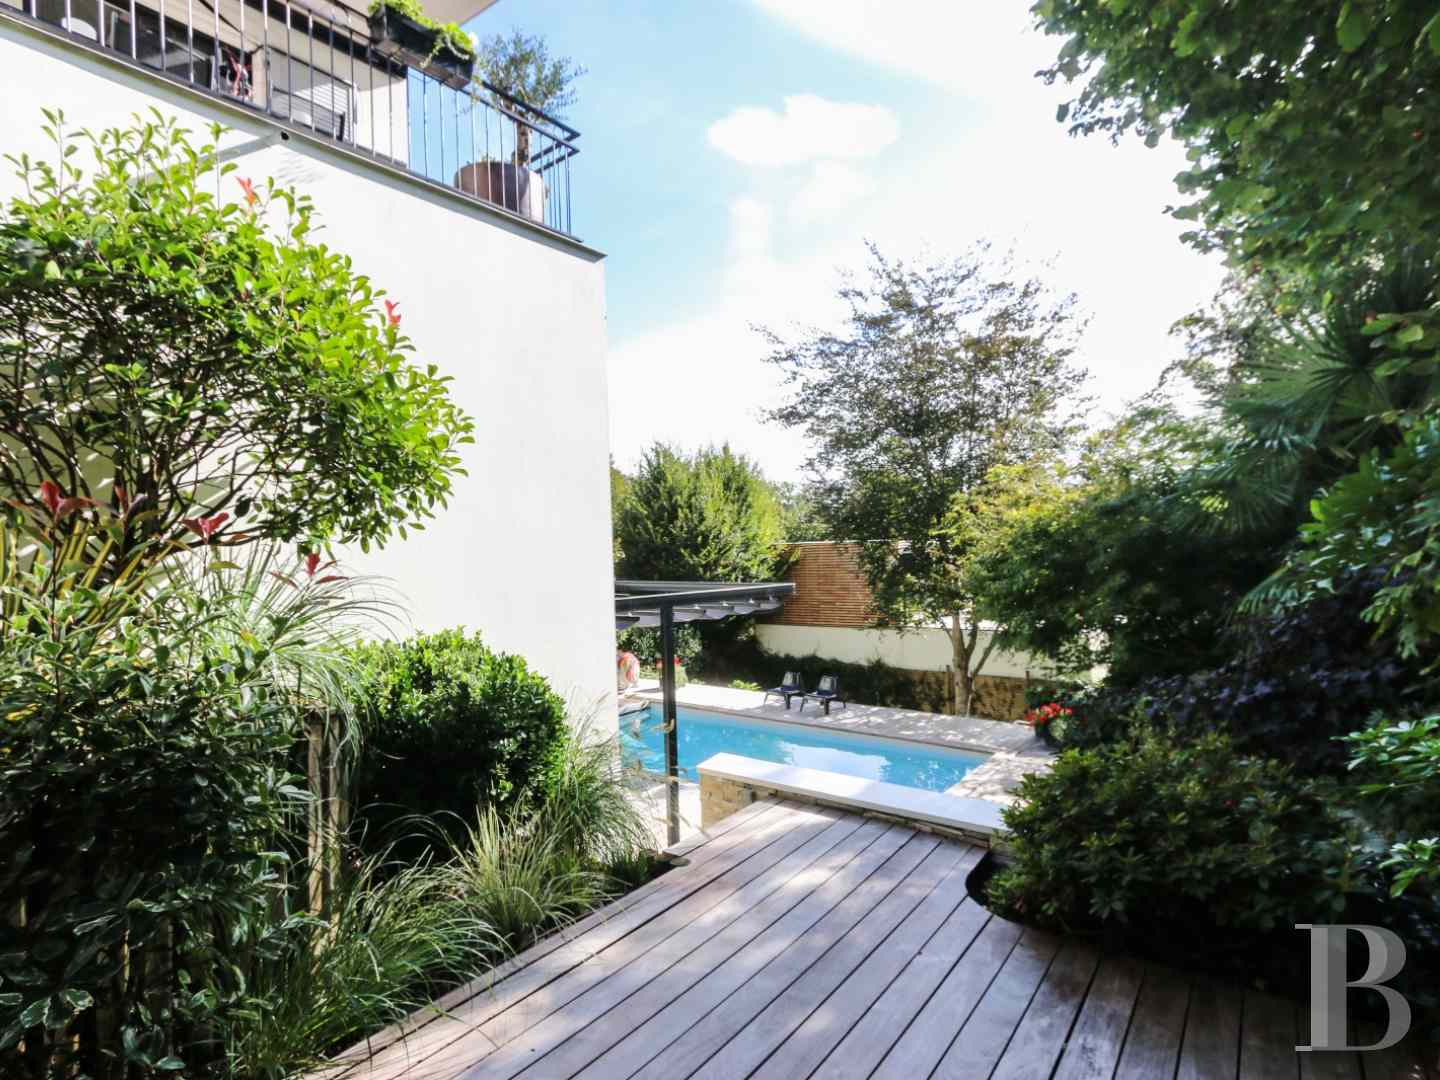 property for sale France paris residences 20th - 12 zoom